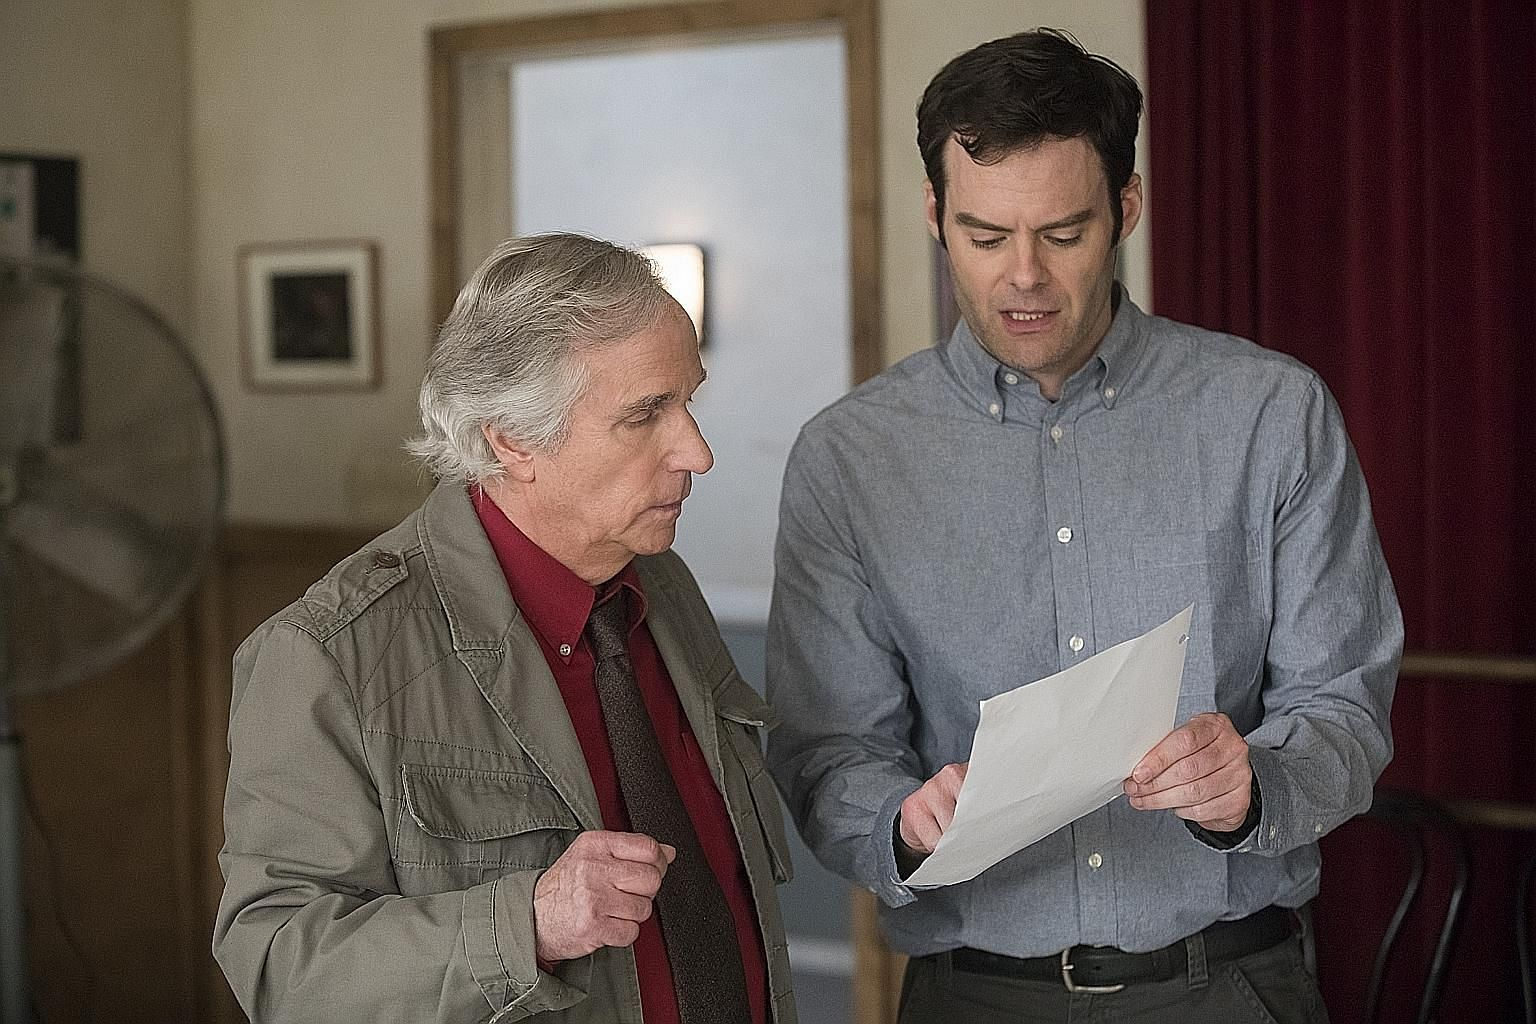 Bill Hader as Barry (above right, with Henry Winkler), an assassin who wants to be an actor. Veerle Baetens (left) is Mie, a woman who has short-term amnesia.